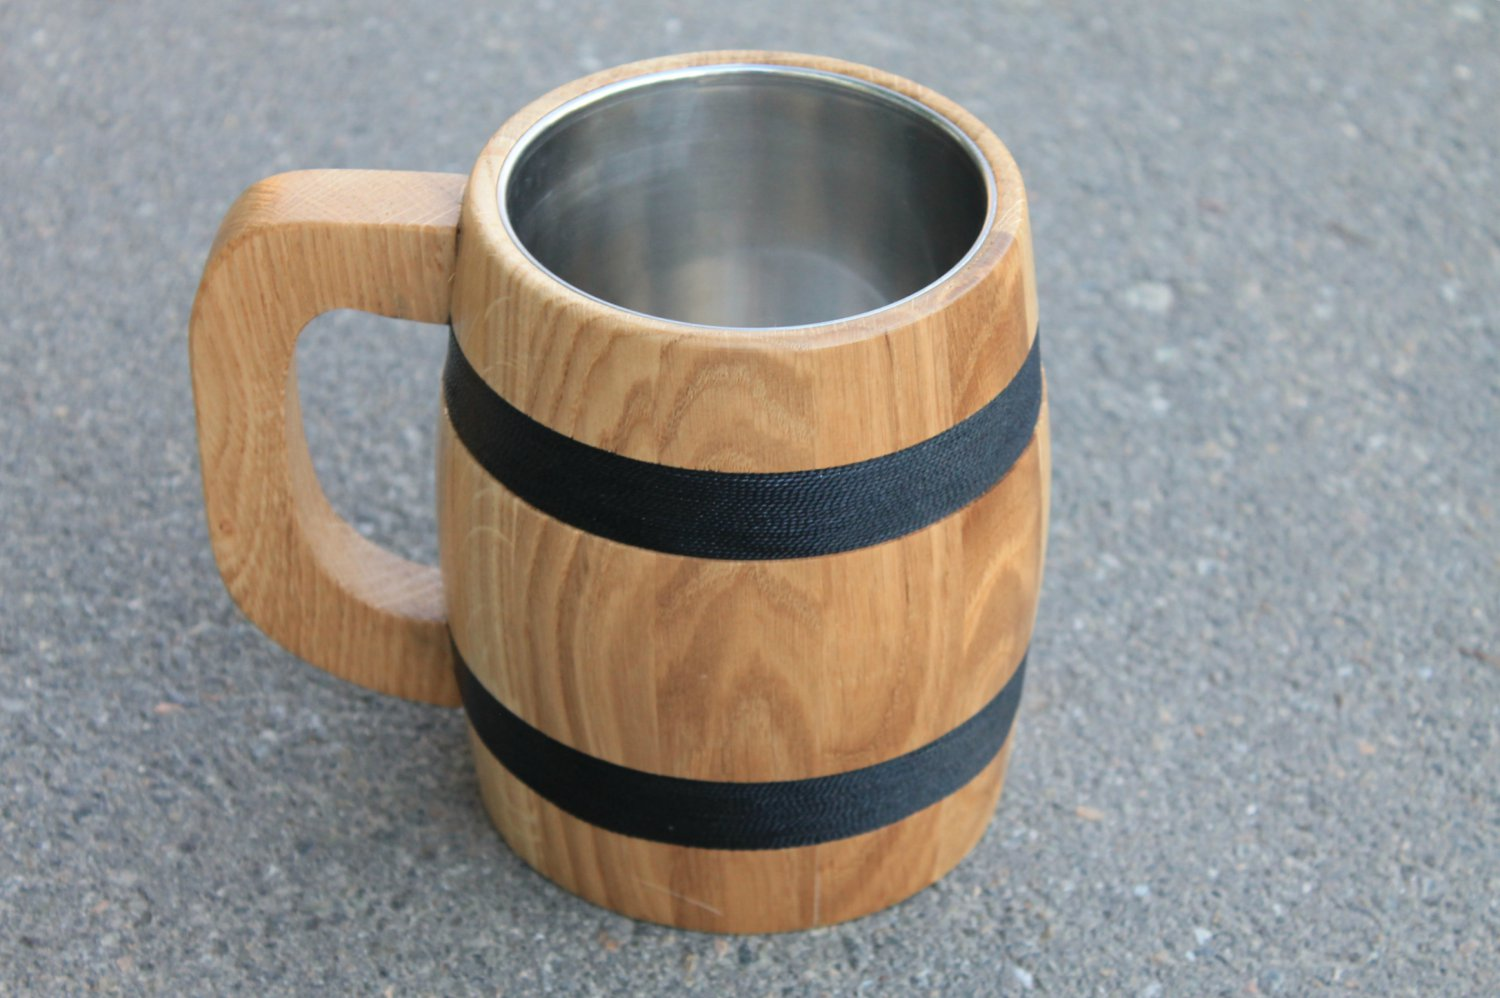 Large Beer Mug with Metal Inside Made of Wood Eco Friendly